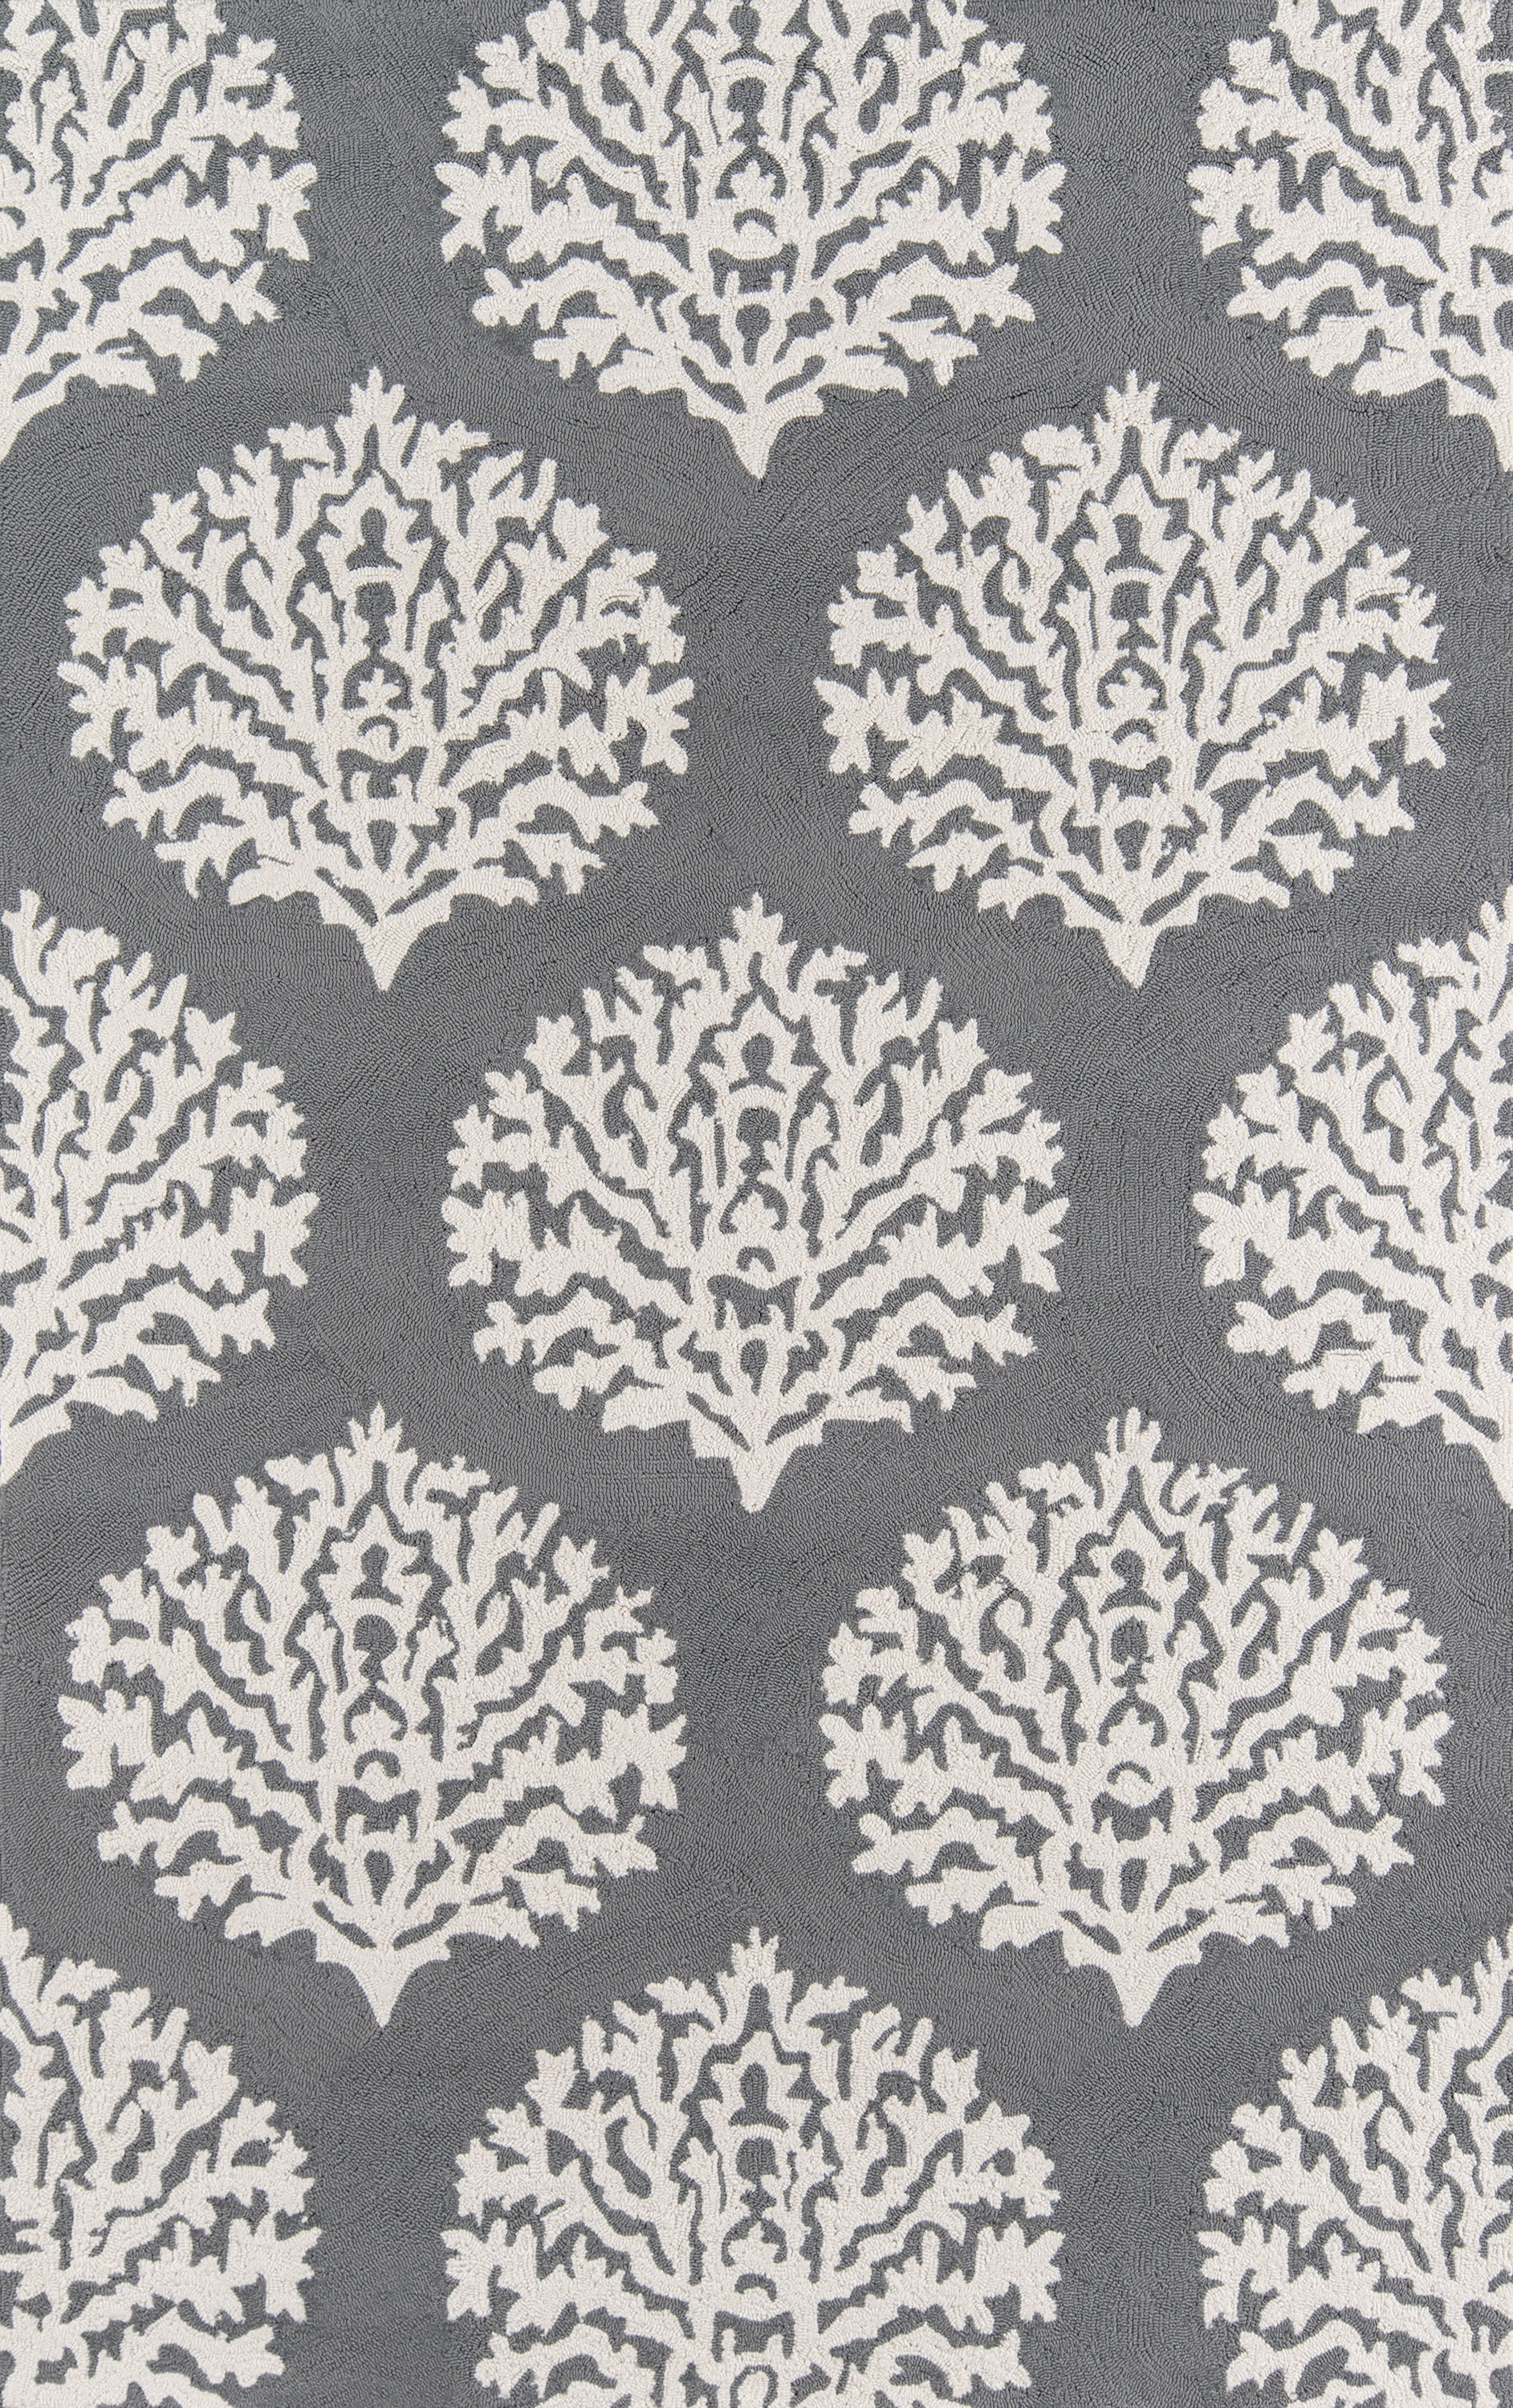 Rectangle, Round Gray Damask Hand Hooked Synthetics Contemporary recommended for Bedroom, Bathroom, Outdoor, Dining Room, Office, Hallway, Living Room